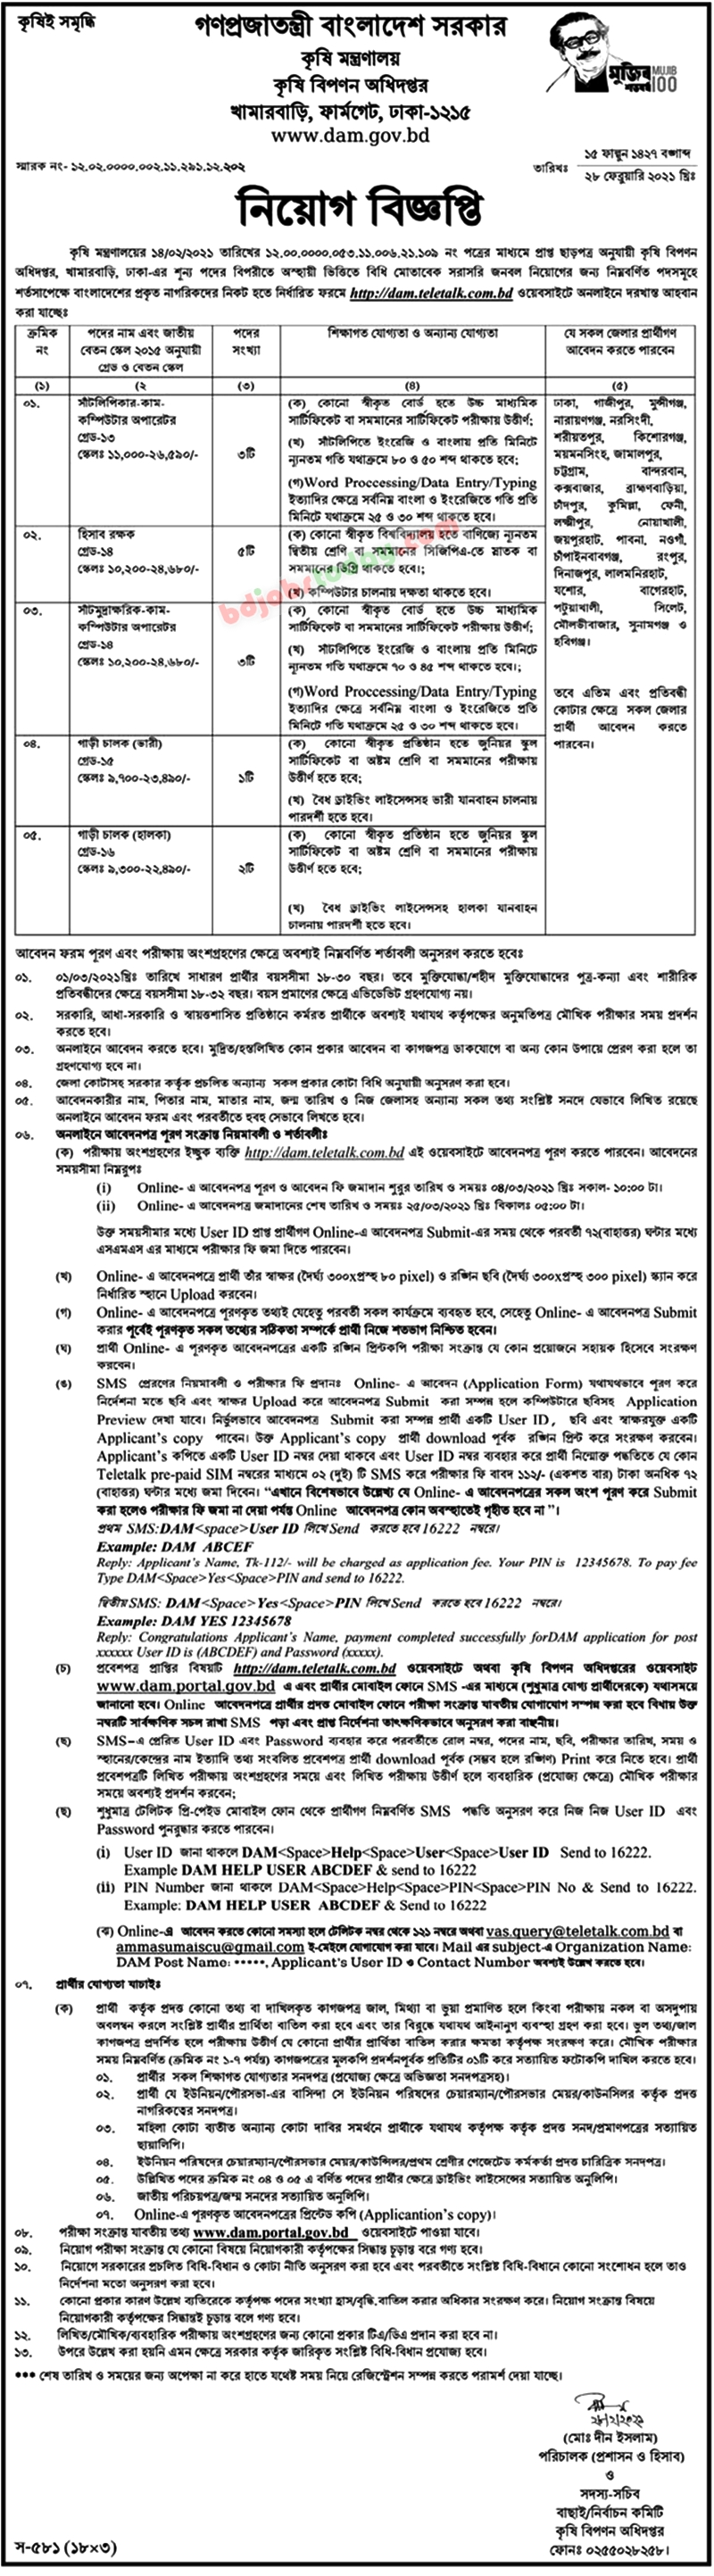 Ministry of Agriculture job circular 2021